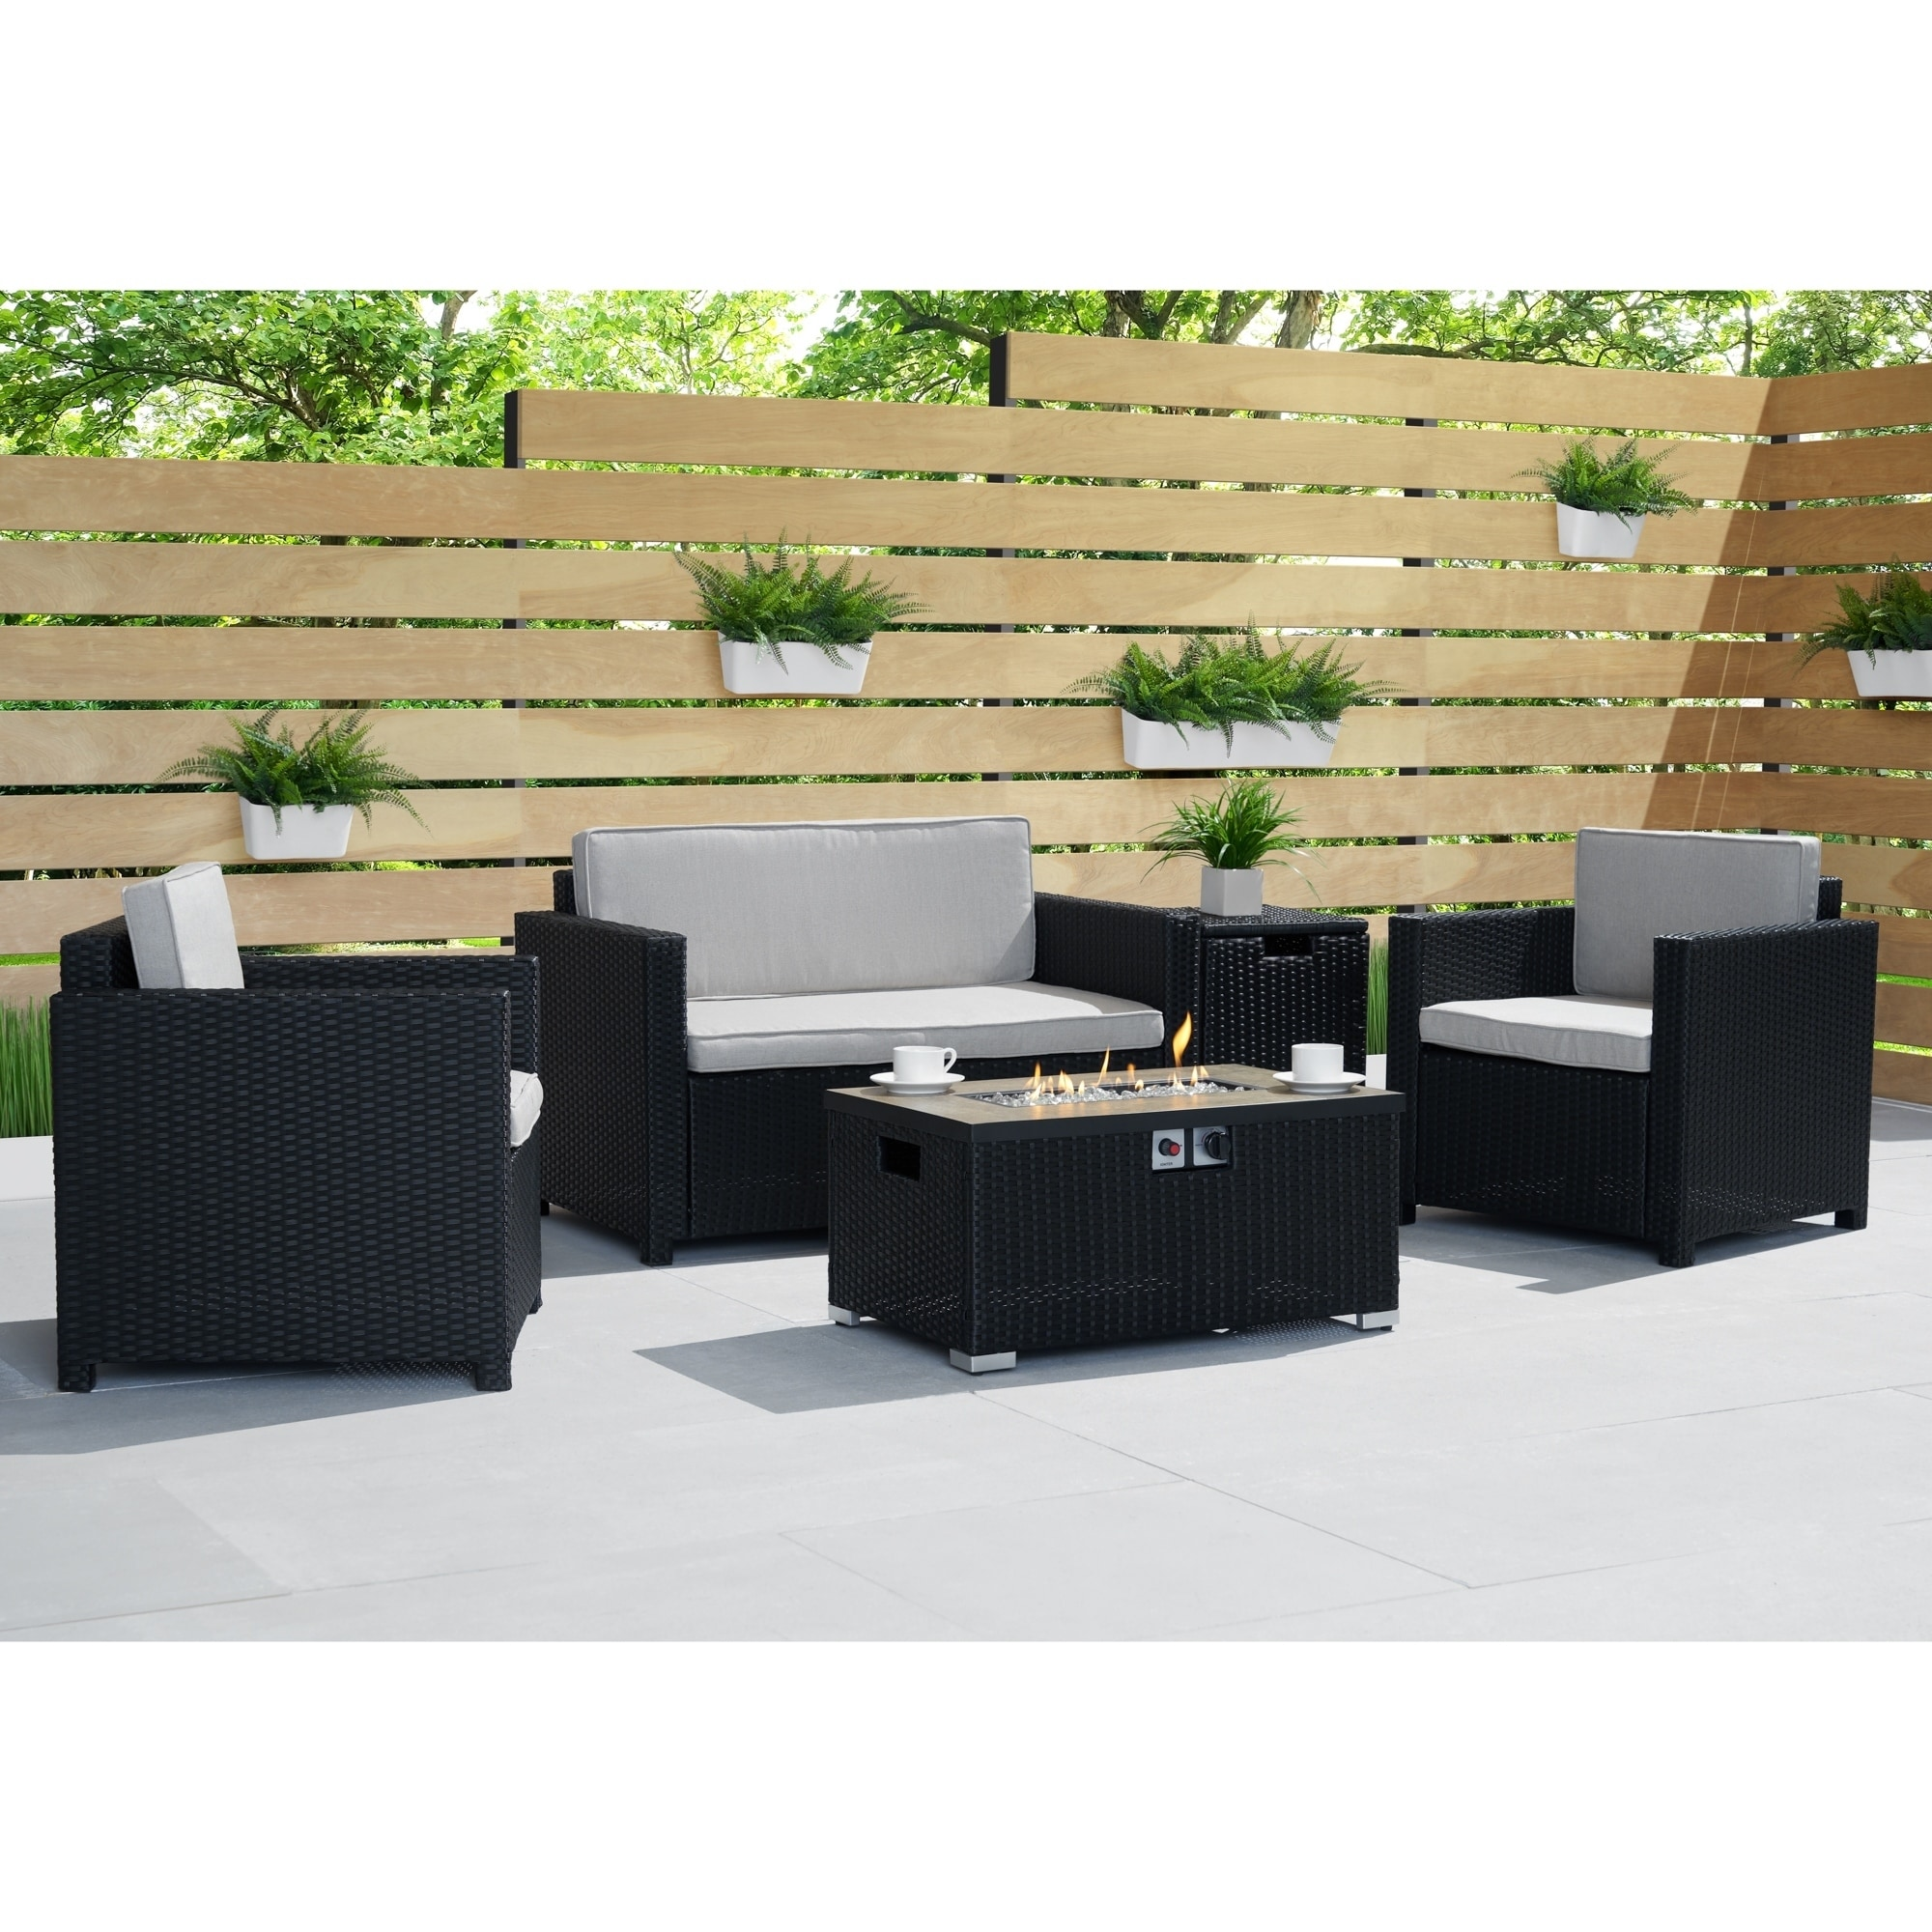 Boulder 4pc Fire Seating Set In Black By Sego Lily